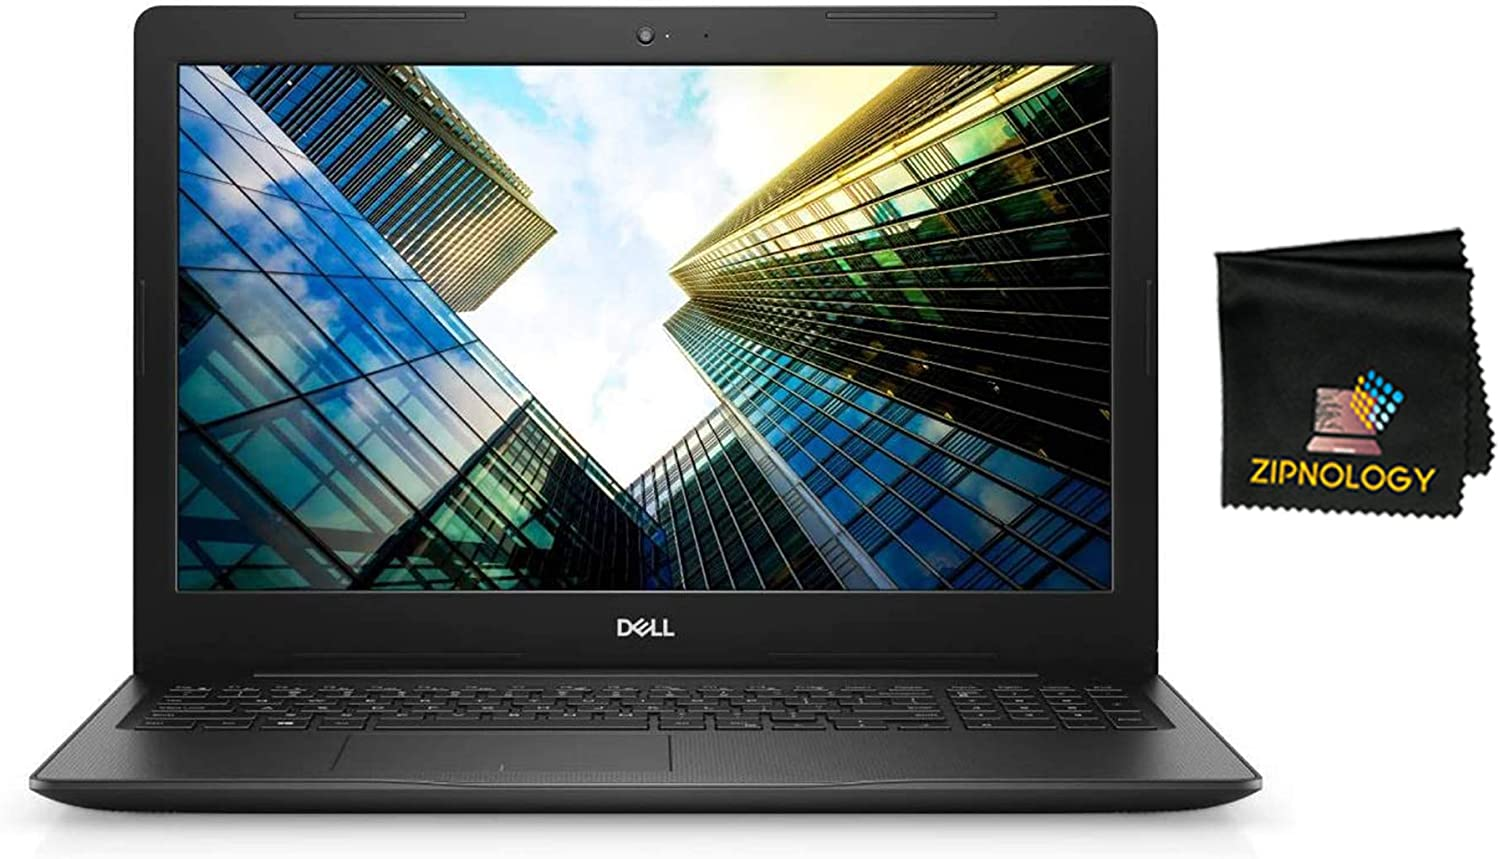 Dell Inspiron 15 3000 Series 3593 - 15.6inch HD Laptop Non-Touch - Intel Core i3-1005G1 - 256GB SSD - 8GB DDR4 - Intel UHD - Windows 10 Home 64-bit + Zipnology Screen Cleaning Cloth Bundle - New